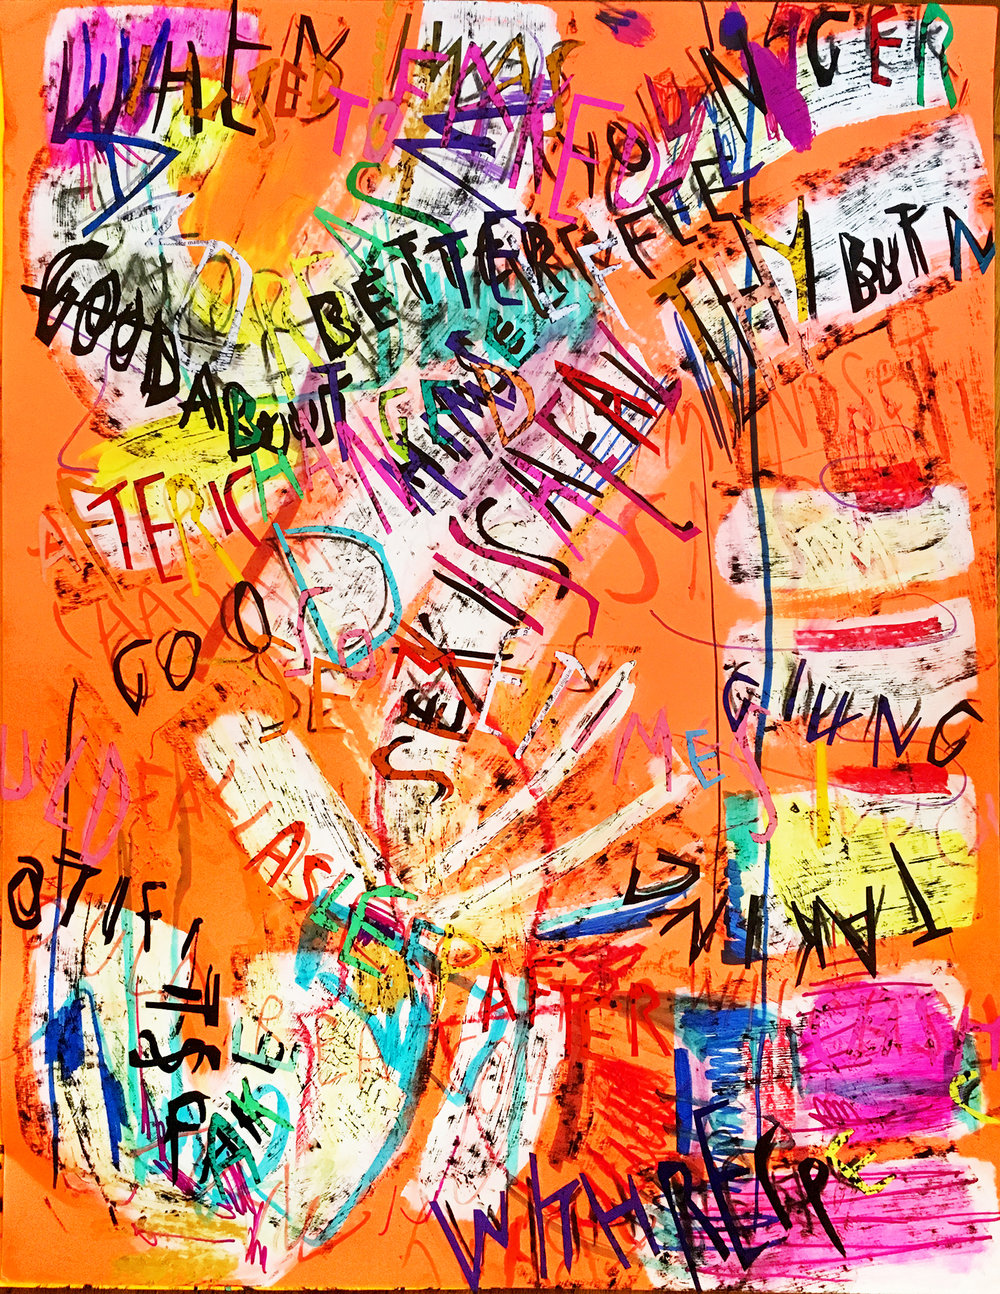 Despina Stokou_Wallflower (peach)_Markers, pastel, and paper collage on primed neon colored paper_71 x 56 cm_2018.jpg